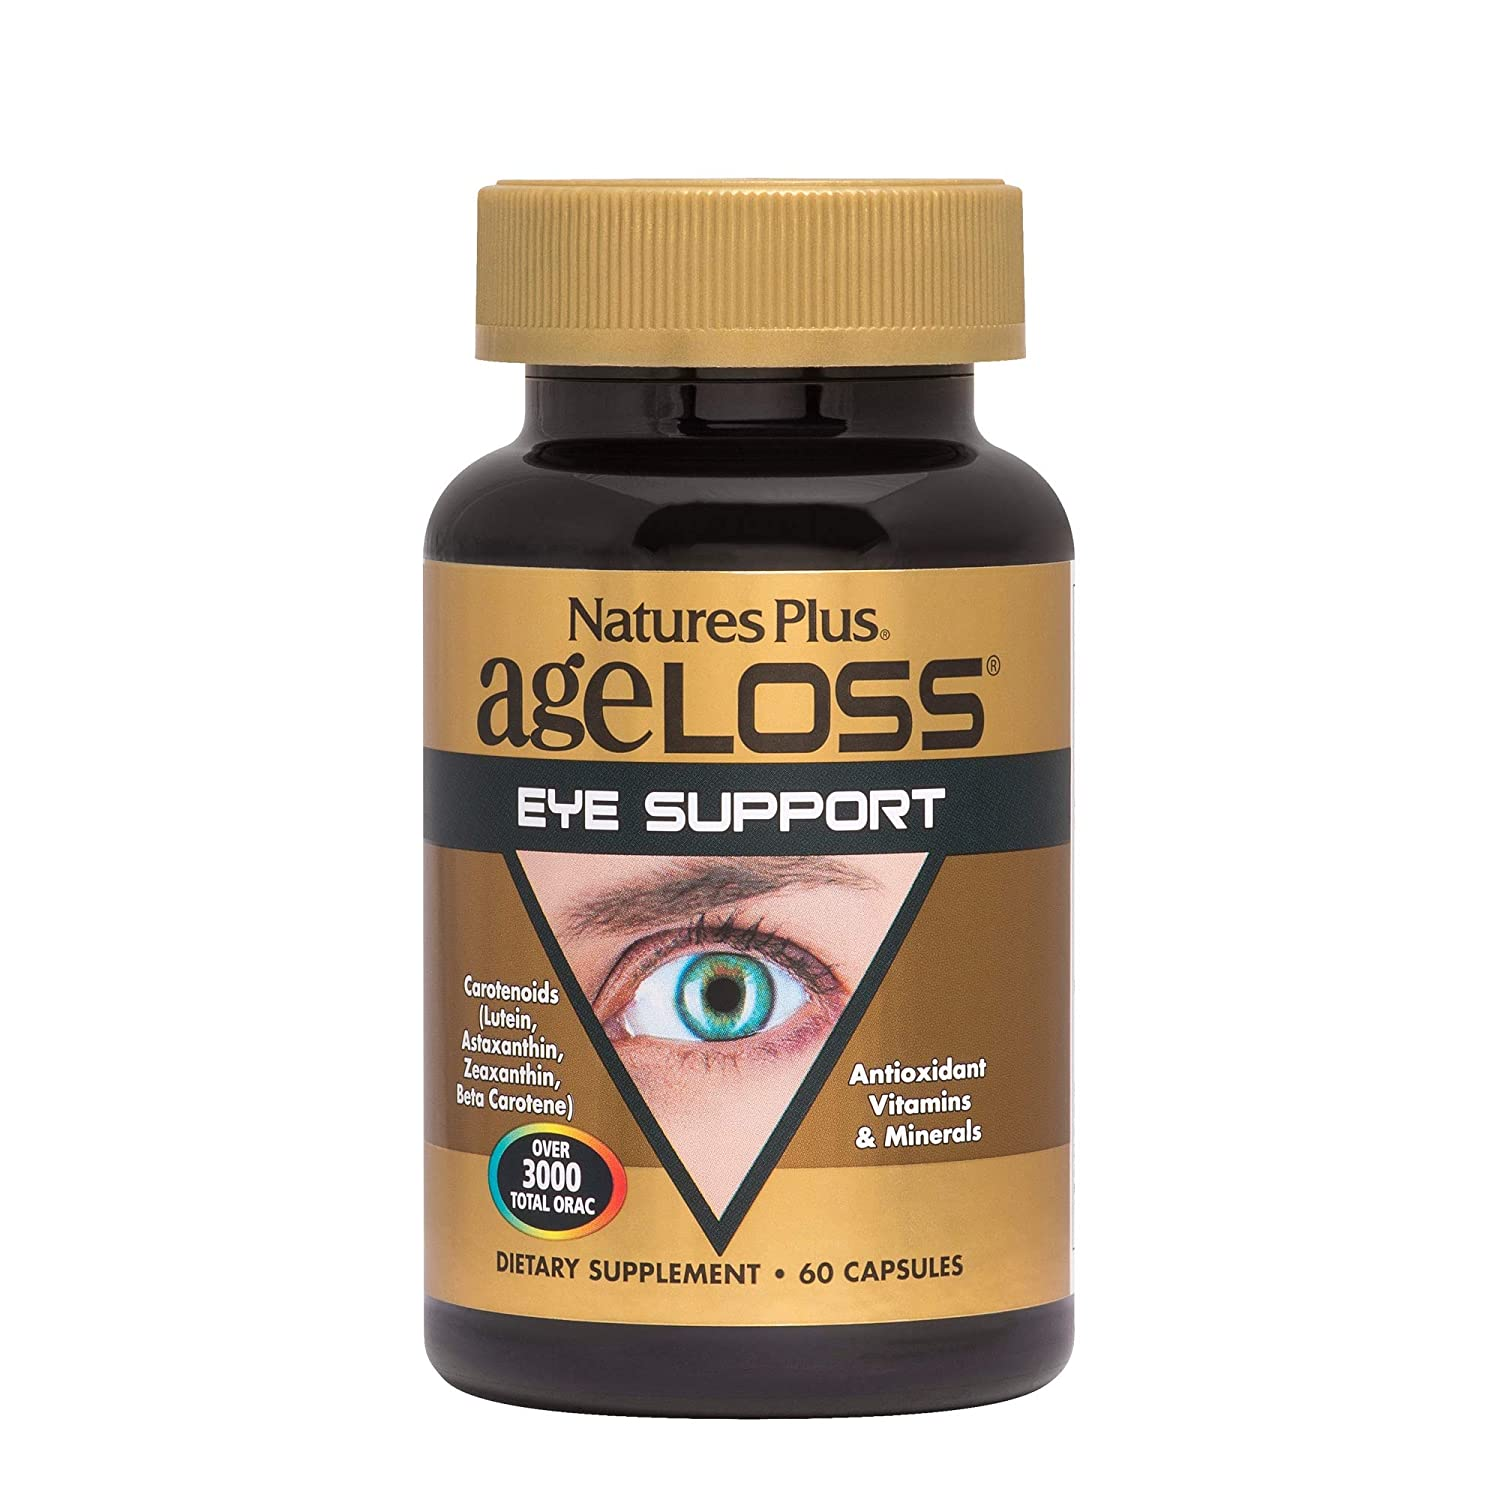 NaturesPlus AgeLoss Eye Support – 60 Vegetarian Capsules – Eye Vitamins Minerals Supplement with Lutein, Astaxanthin Zeaxanthin, Antioxidant – Gluten-Free – 30 Servings